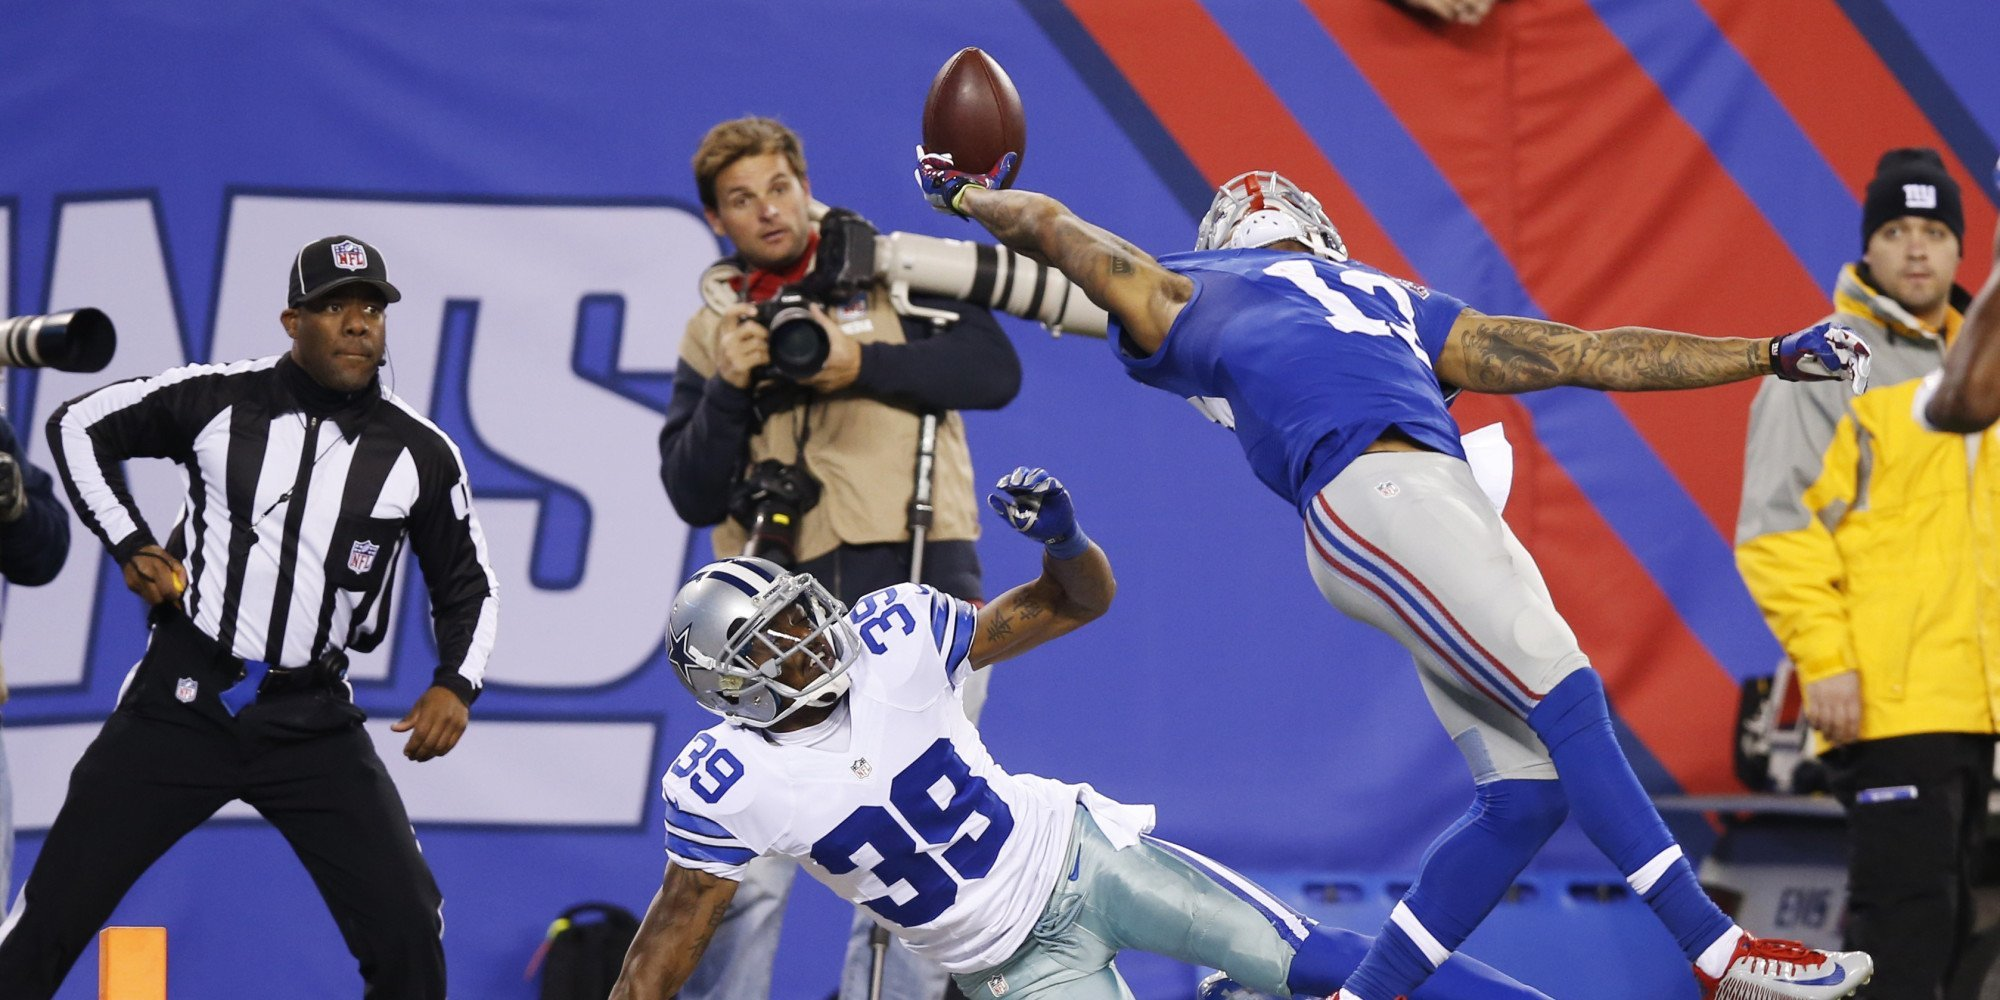 odell beckham philadelphia eagles take down giants nfl 2015 images